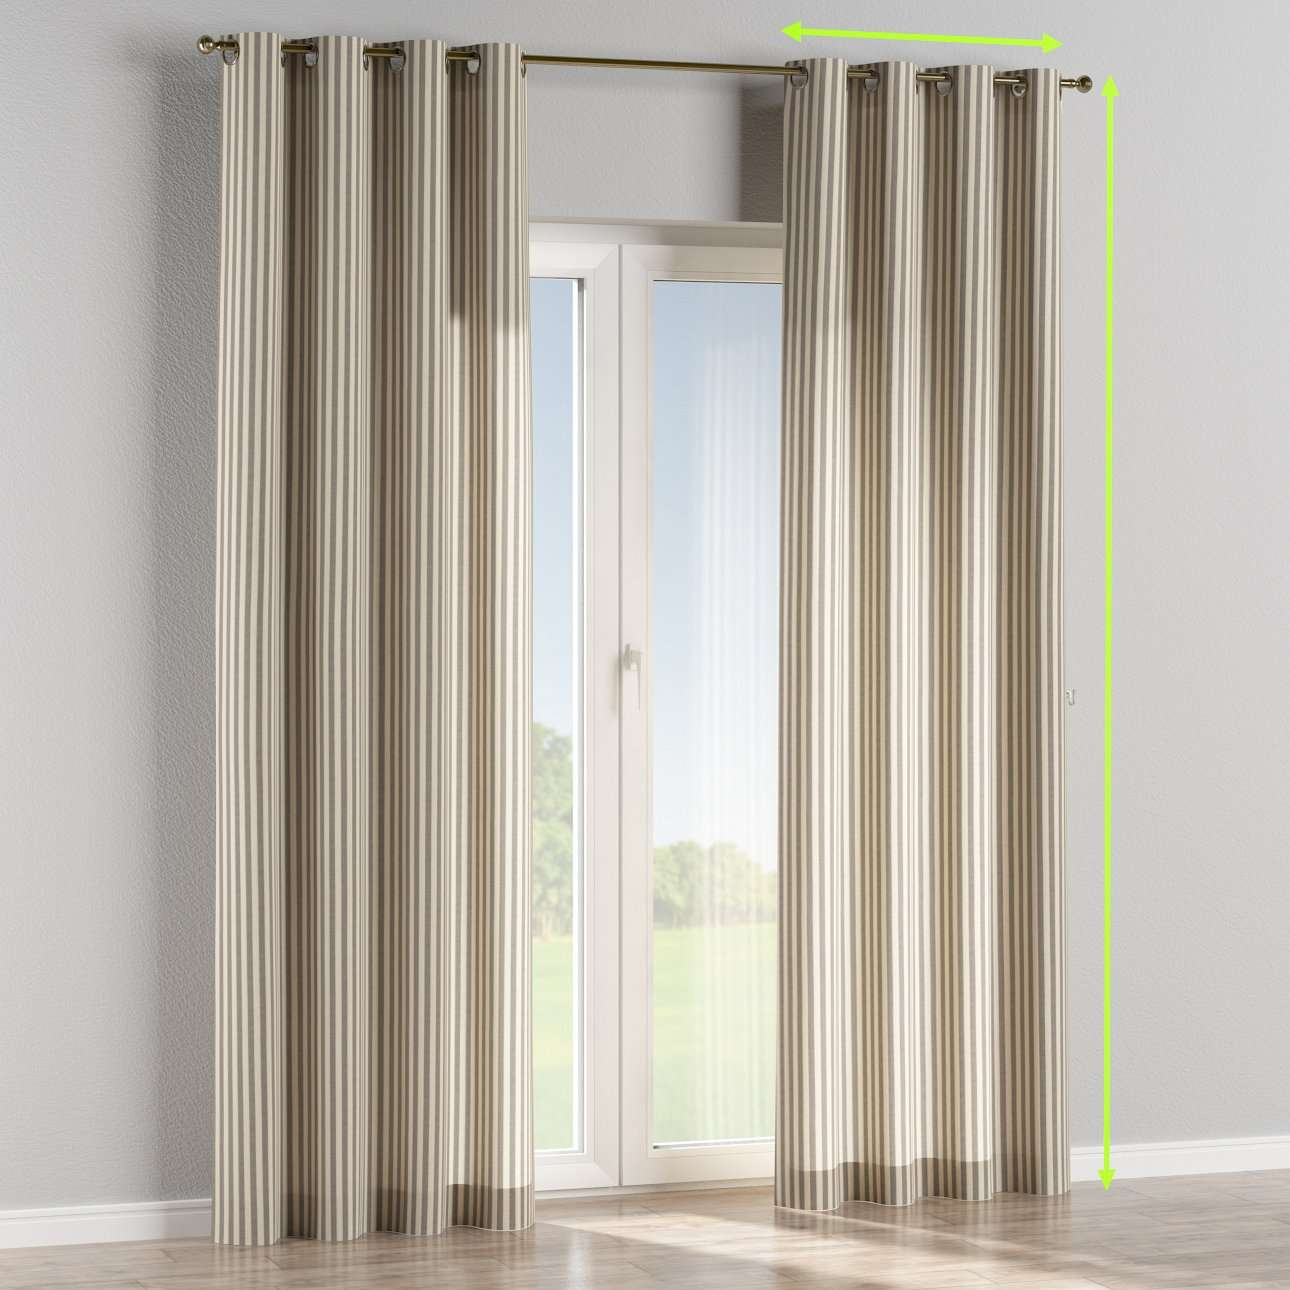 Eyelet curtains in collection Quadro, fabric: 136-12